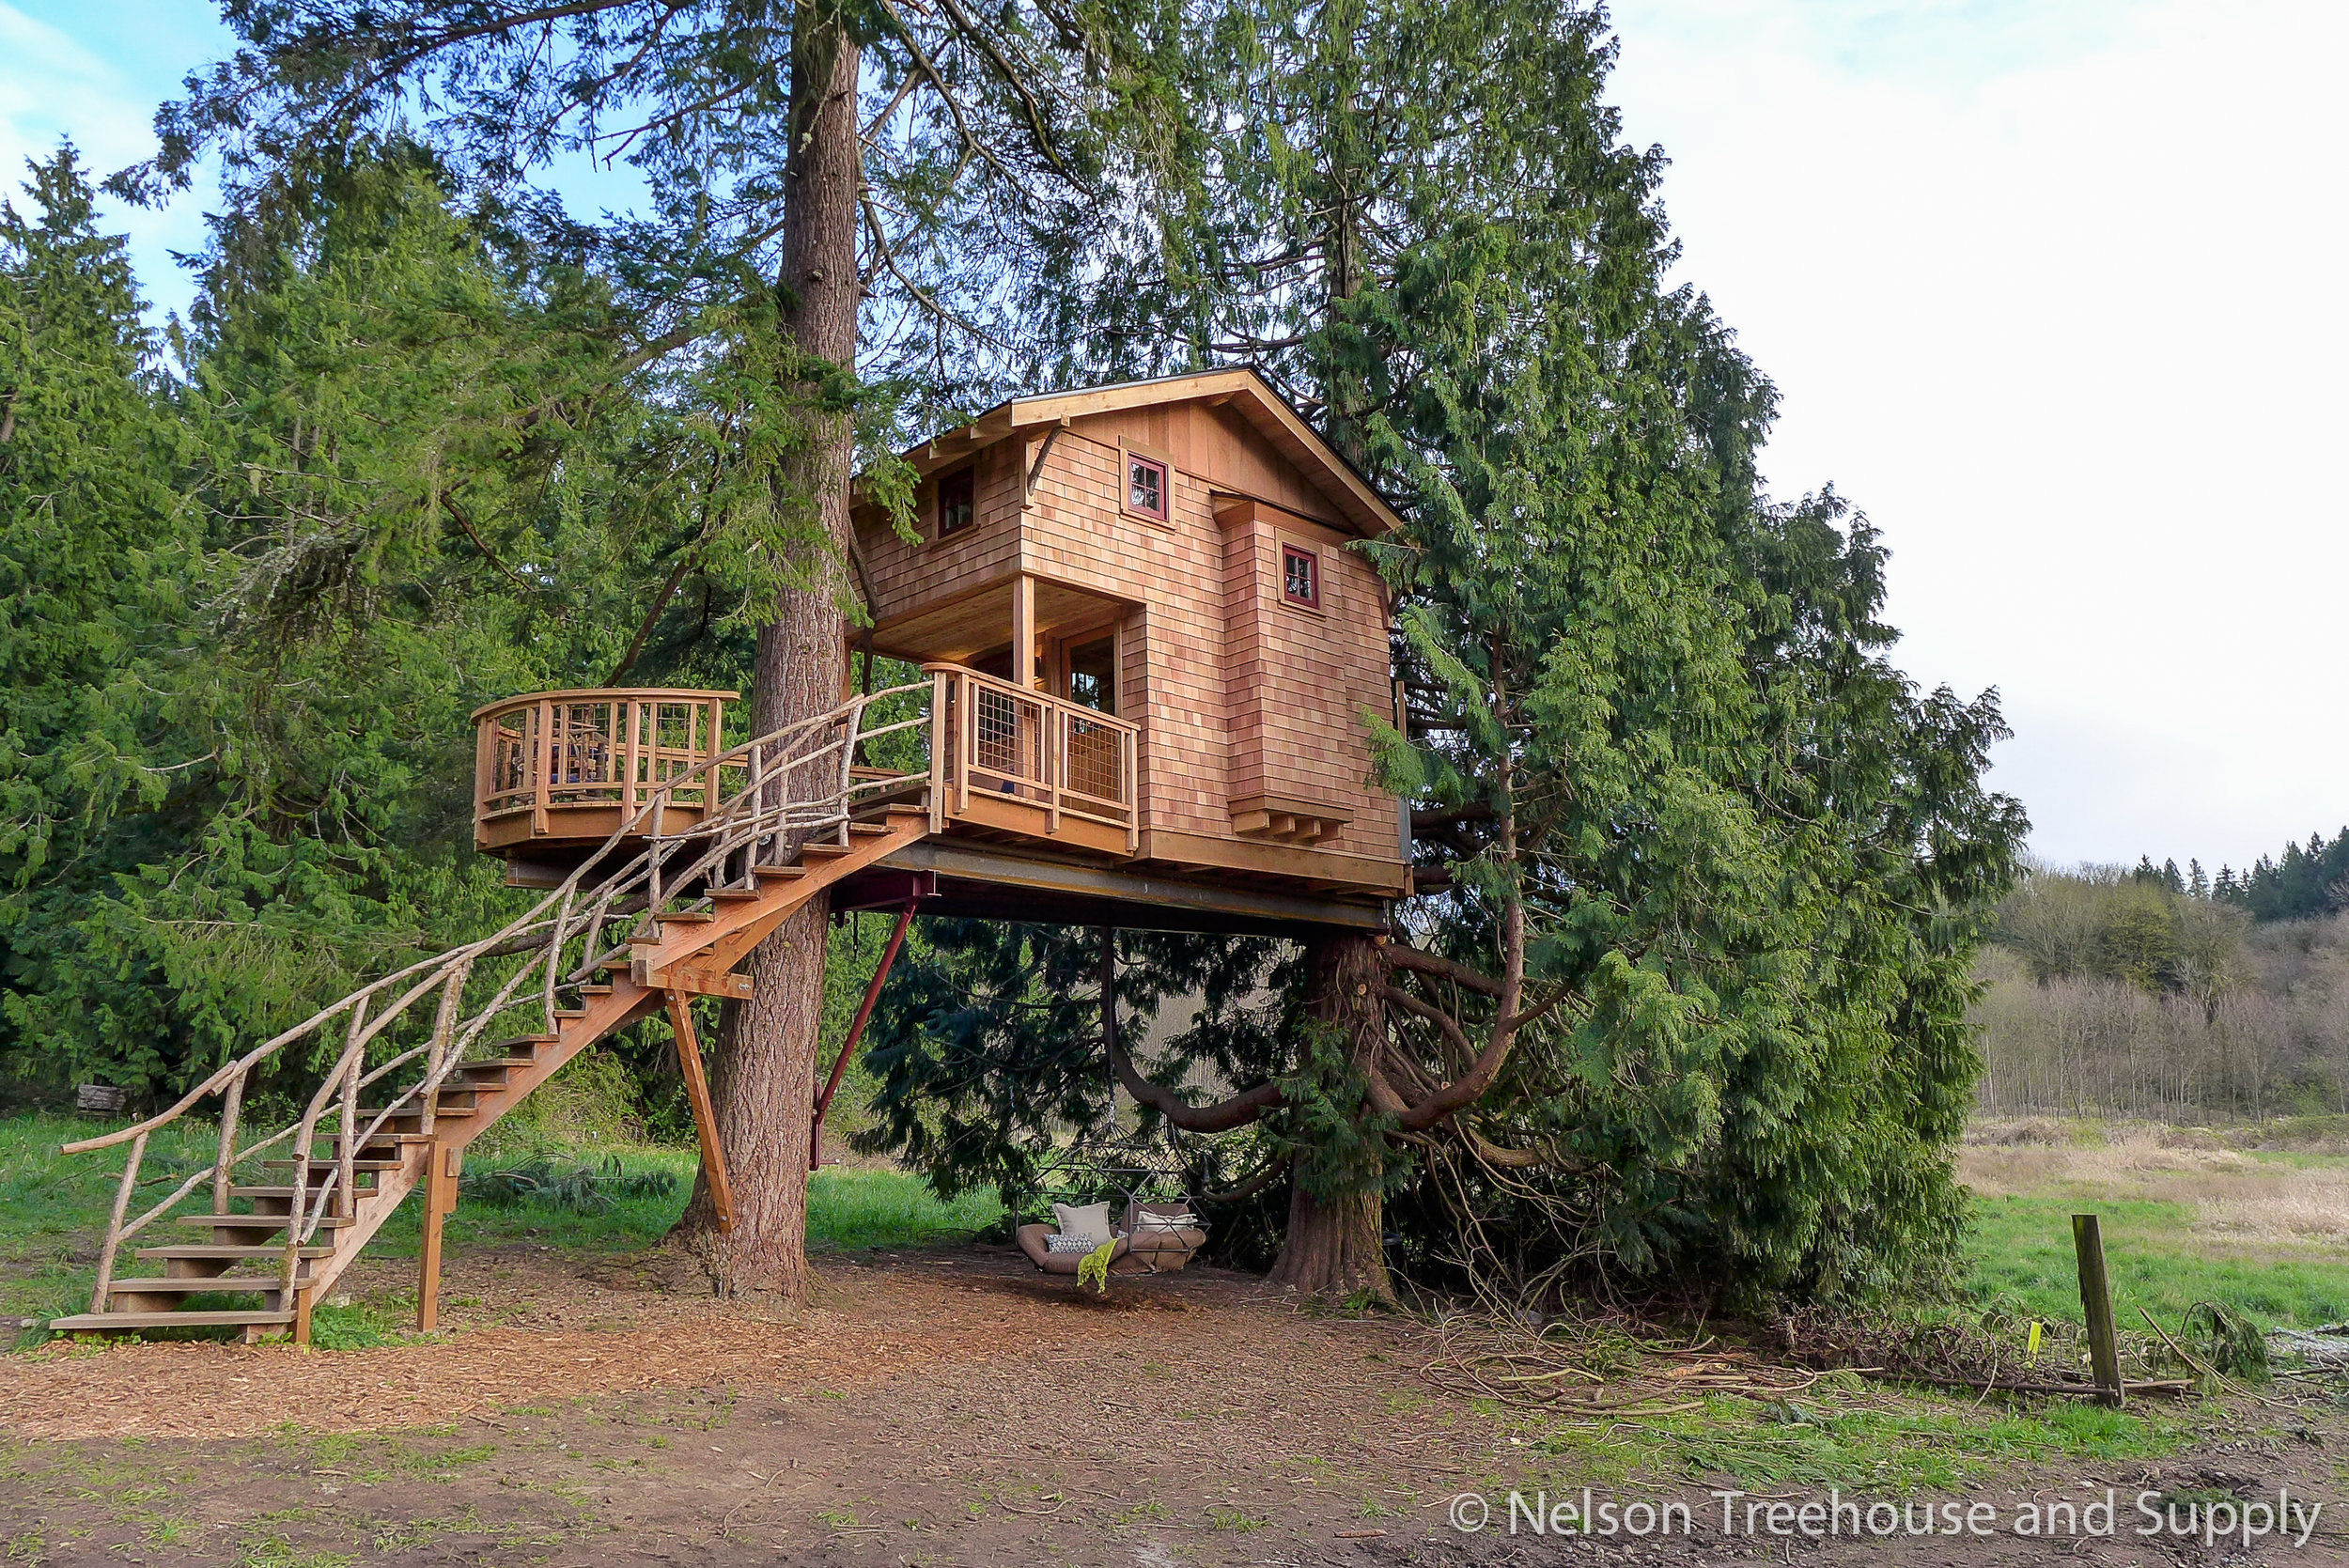 charlies_treehouse_exterior_2